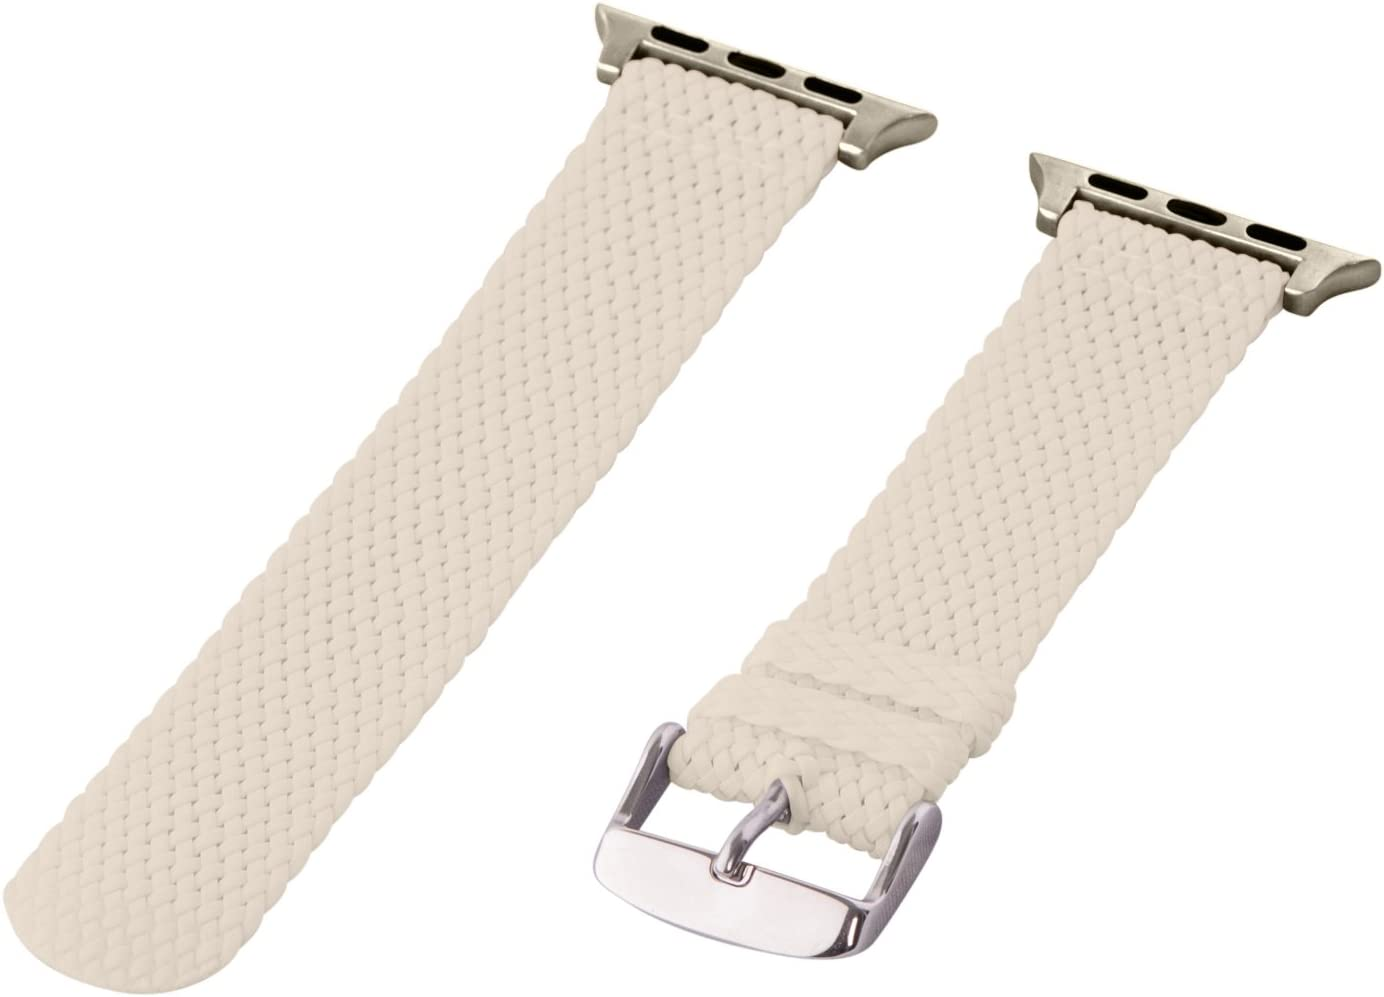 Clockwork Synergy - 2 Piece Perlon Braided Nylon Bands for Apple Watch (42mm White)